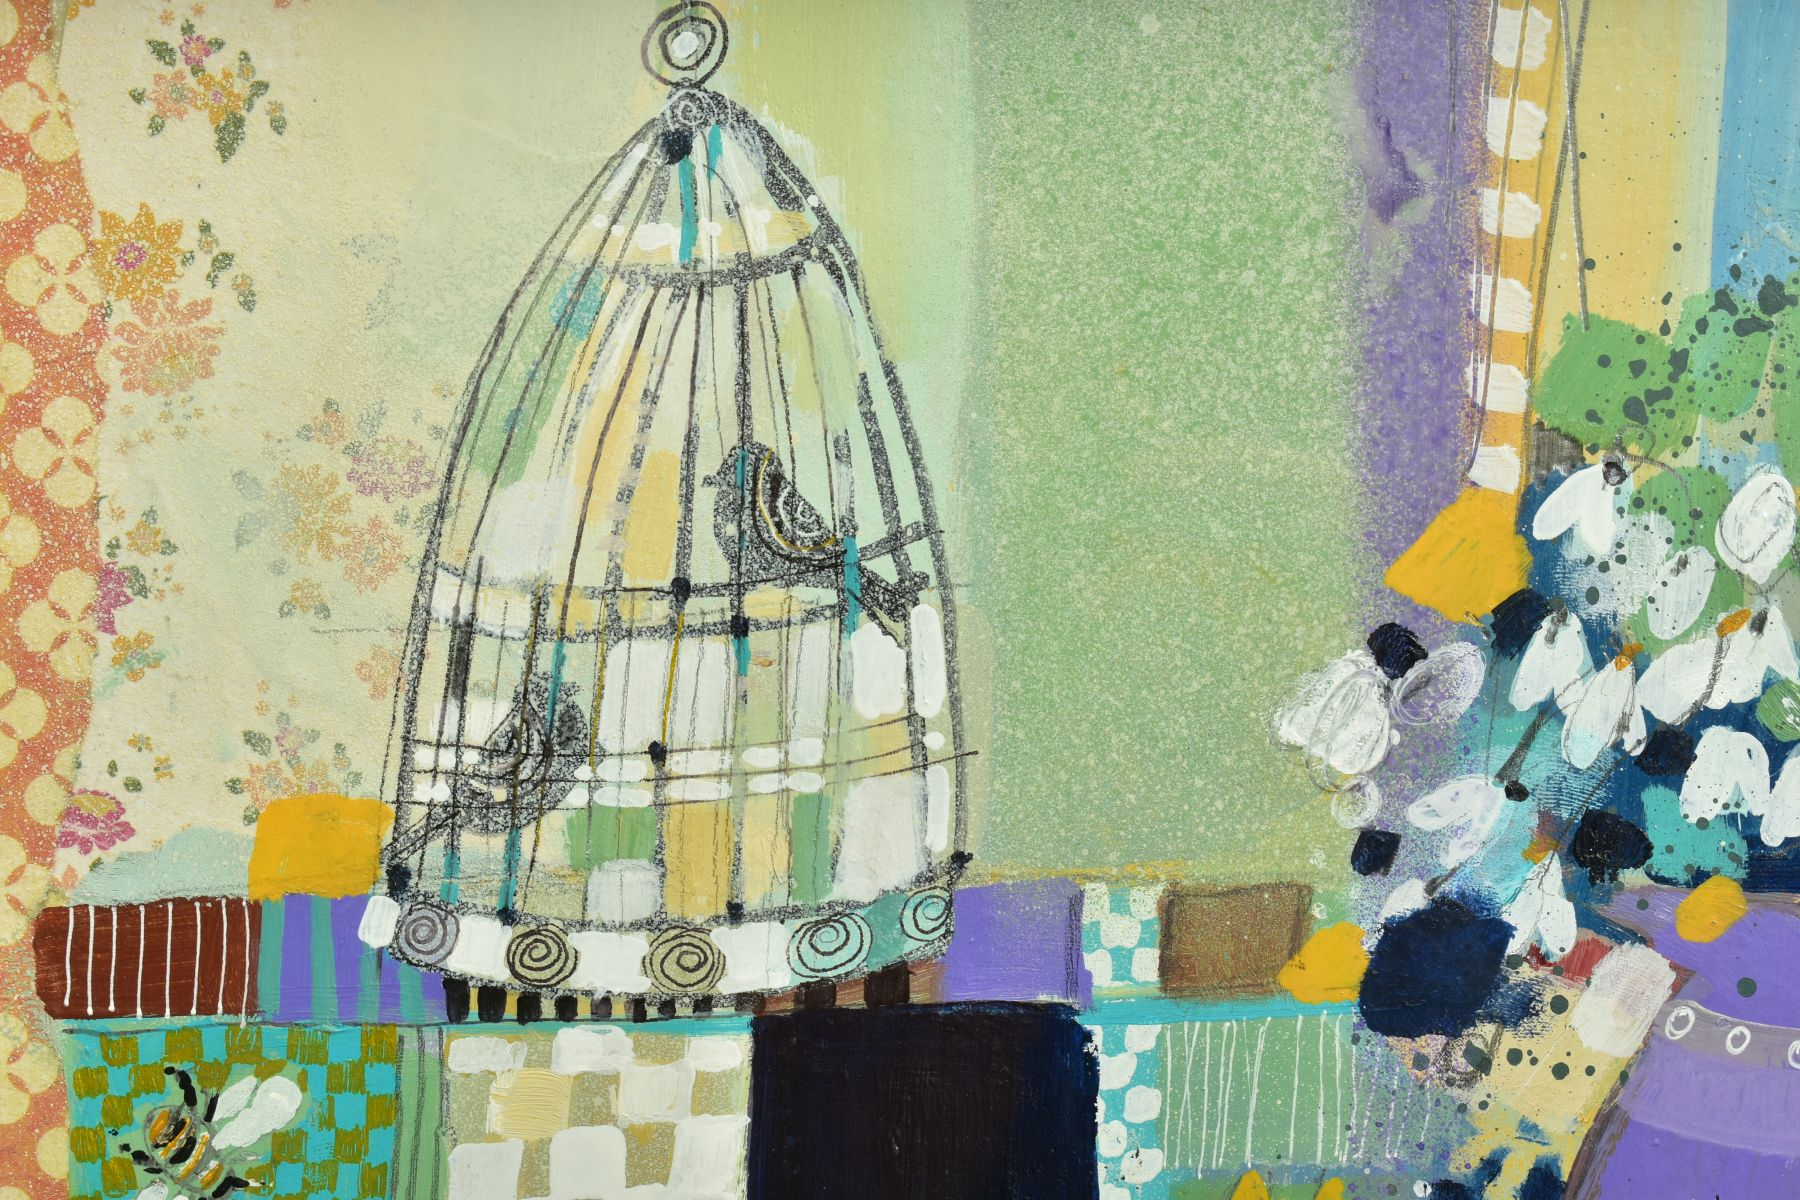 EMMA S. DAVIS (SCOTTISH 1975), 'Two Birds, Two Bees', a still life study of an interior, signed - Image 4 of 7